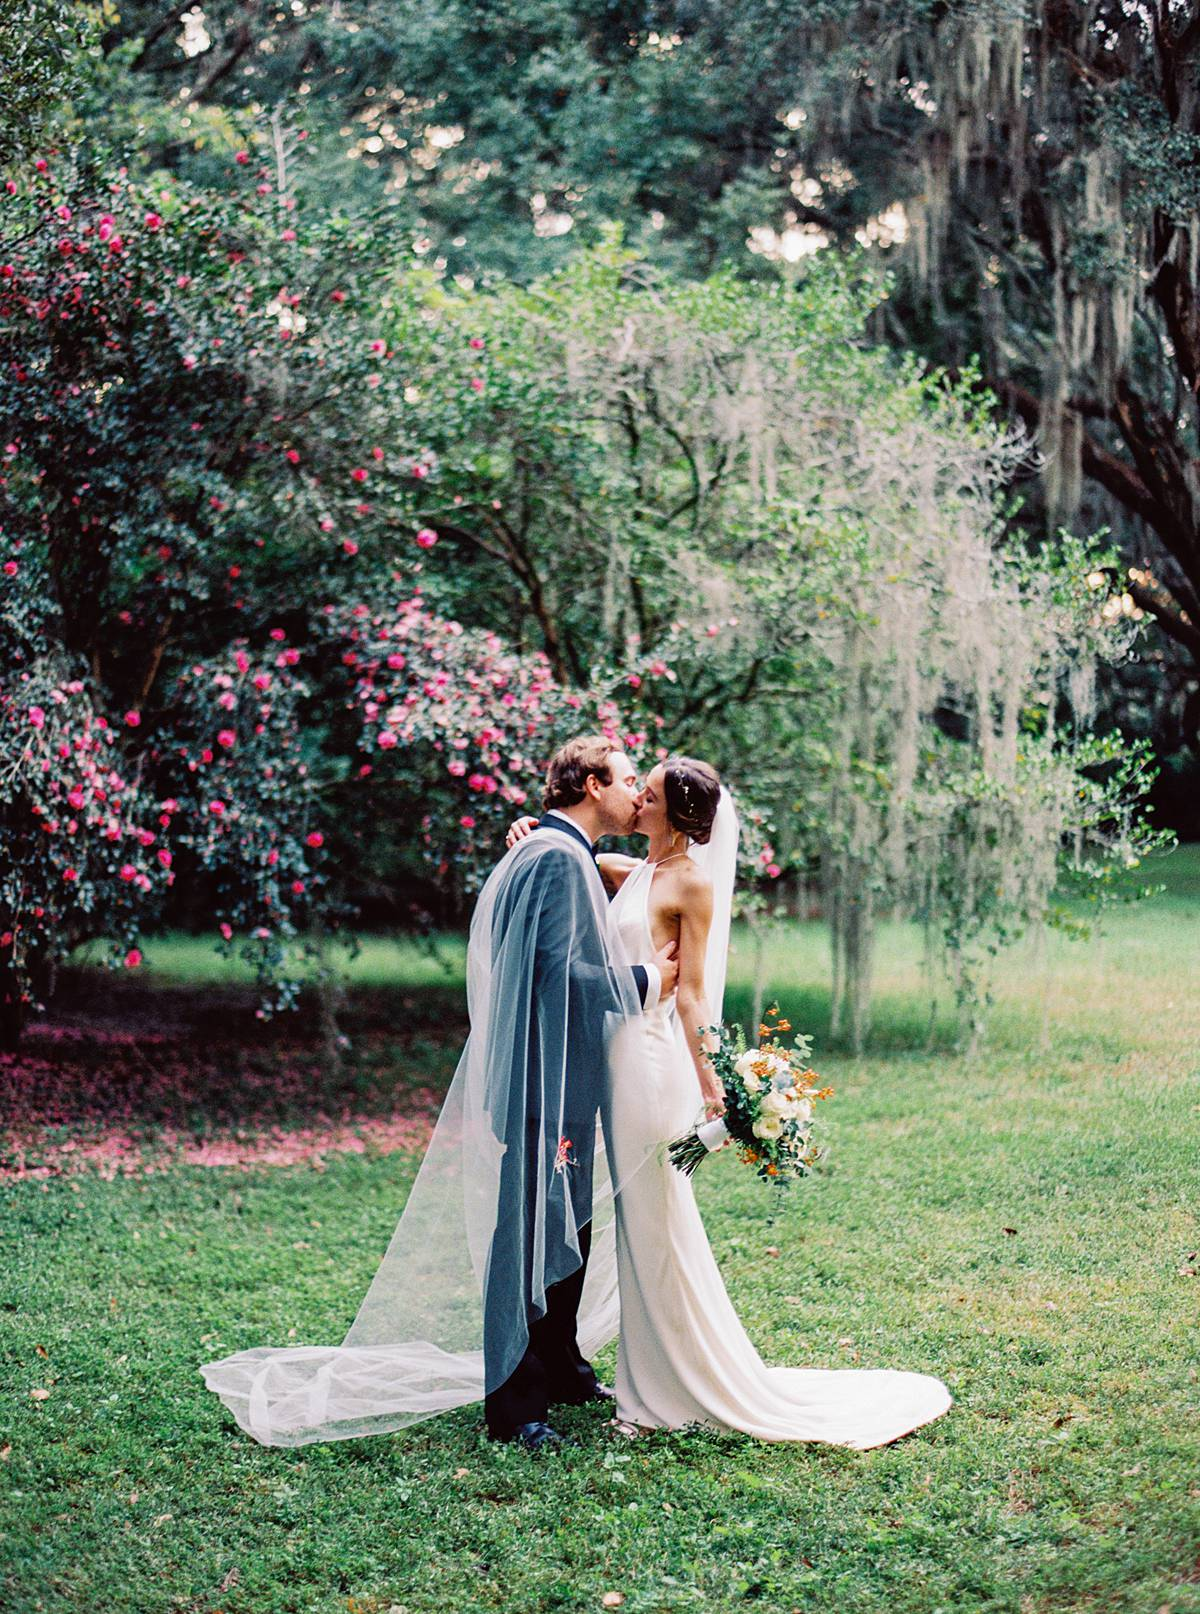 wedding portrait at legare waring house in charleston sc on kodak portra 800 film with blooming flowers on oak trees